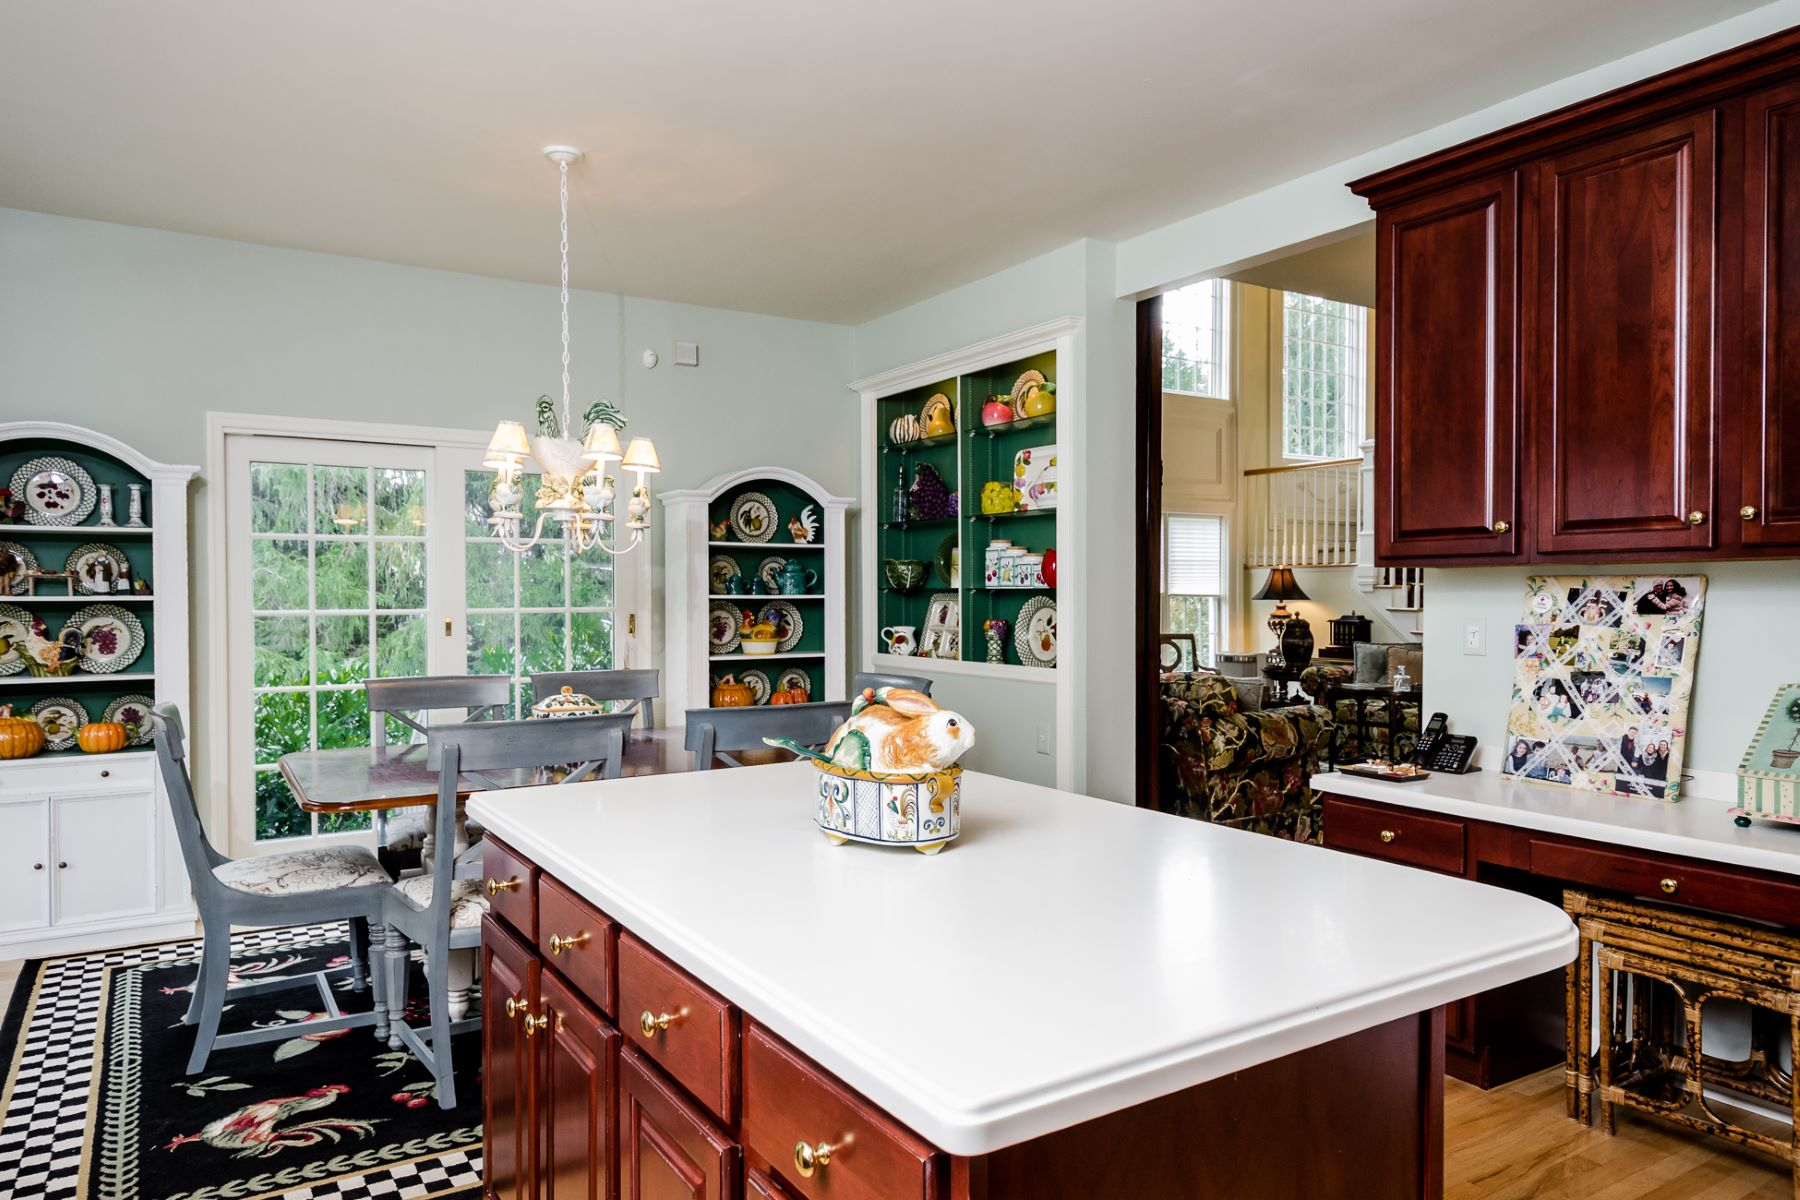 Additional photo for property listing at Inspired Elegance - Montgomery Township 10 Banyan Road Skillman, Nueva Jersey 08558 Estados Unidos